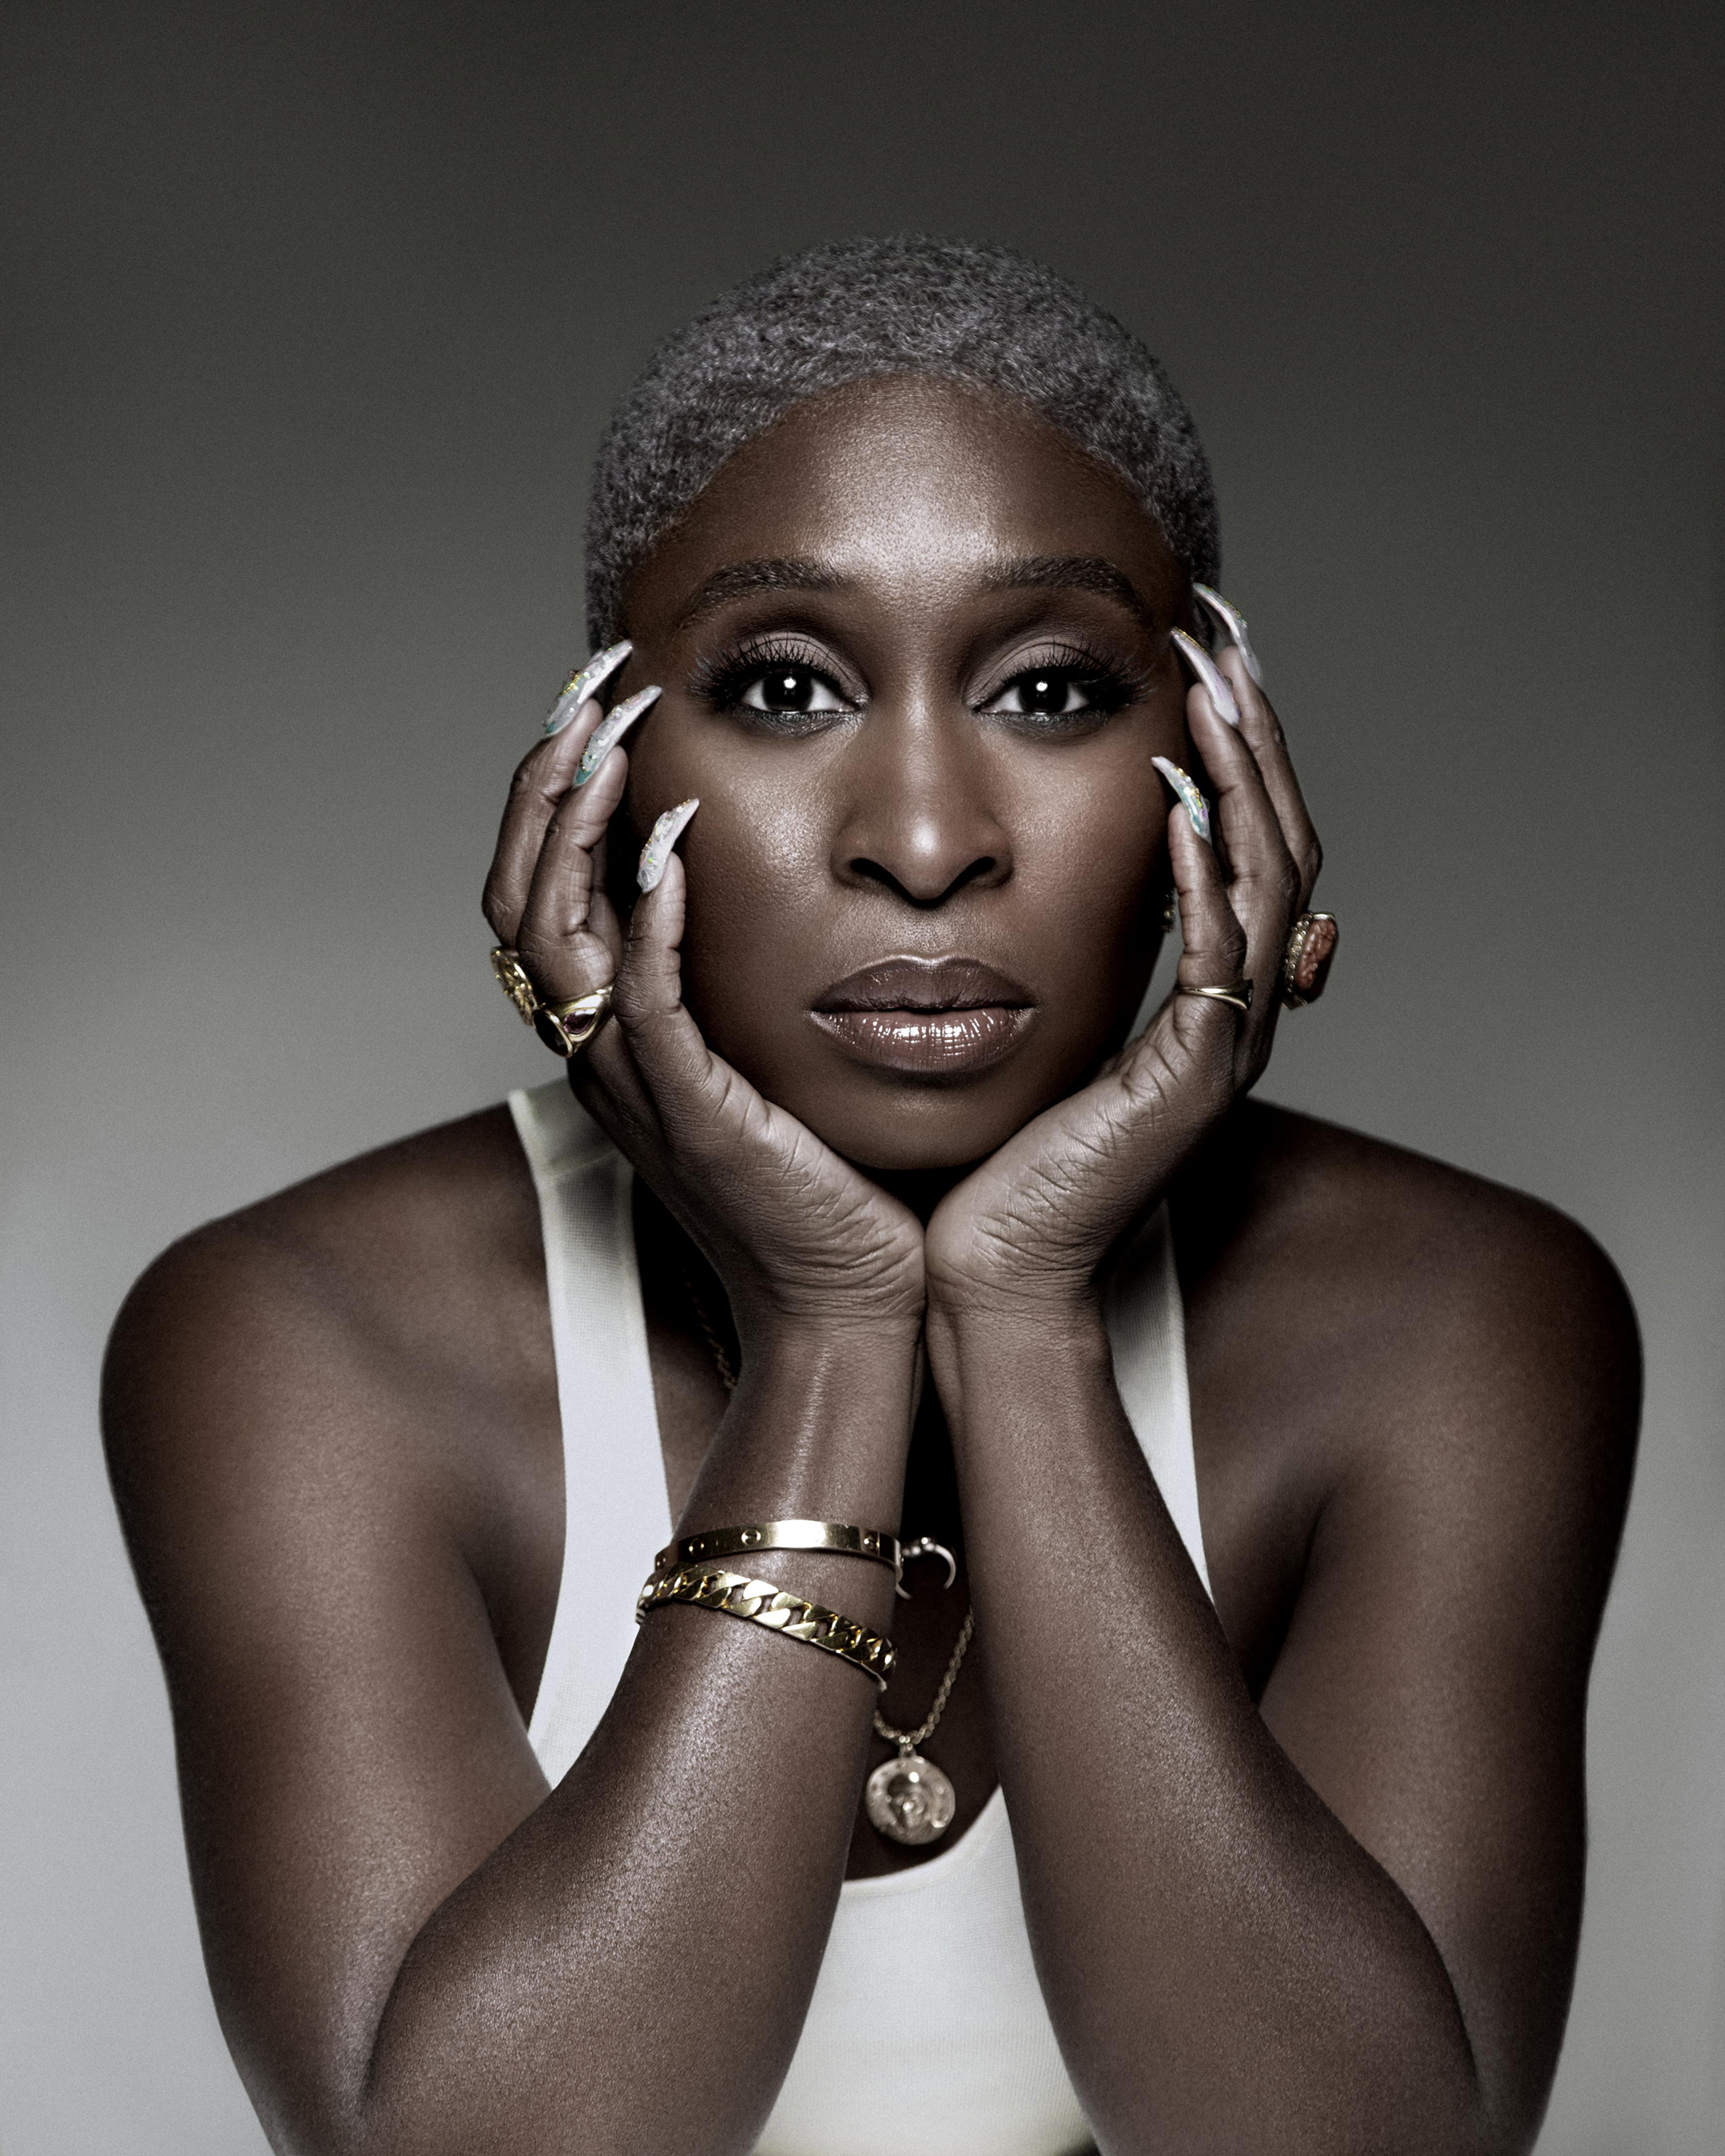 Tony, Emmy, and Grammy winner and two-time Oscar nominee, Cynthia Erivo, will perform on this year's special presentation of the NATIONAL MEMORIAL DAY CONCERT on PBS, Sunday, May 24 at 8.00 p.m. E.T.